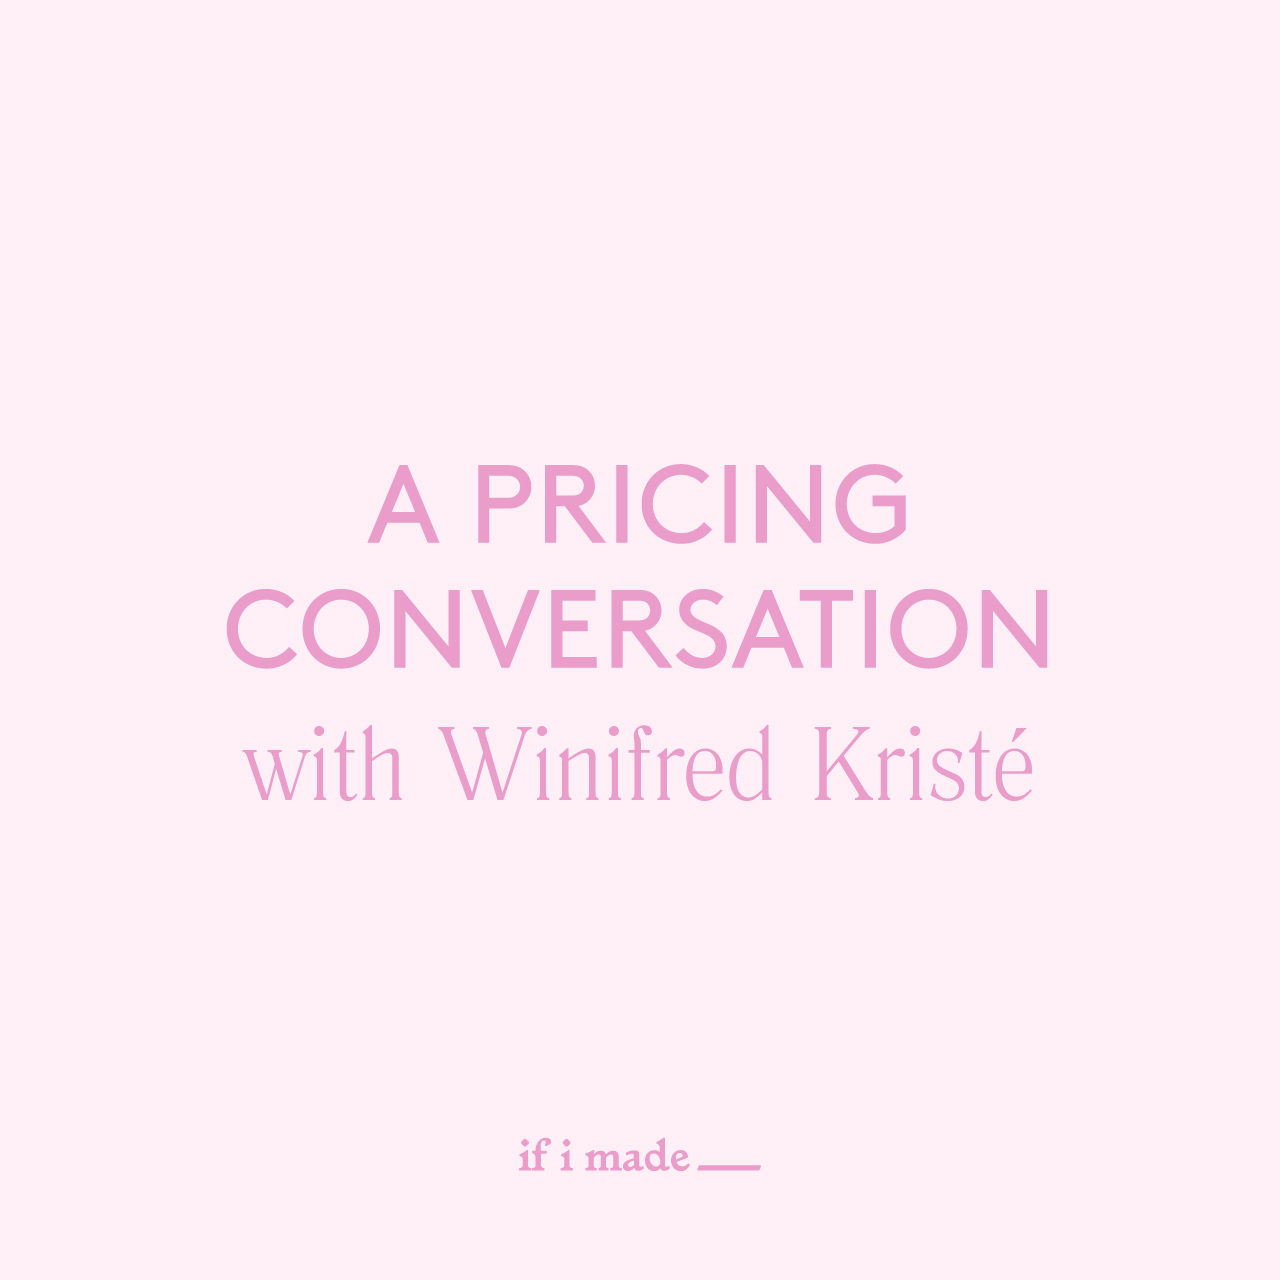 A Pricing Conversation